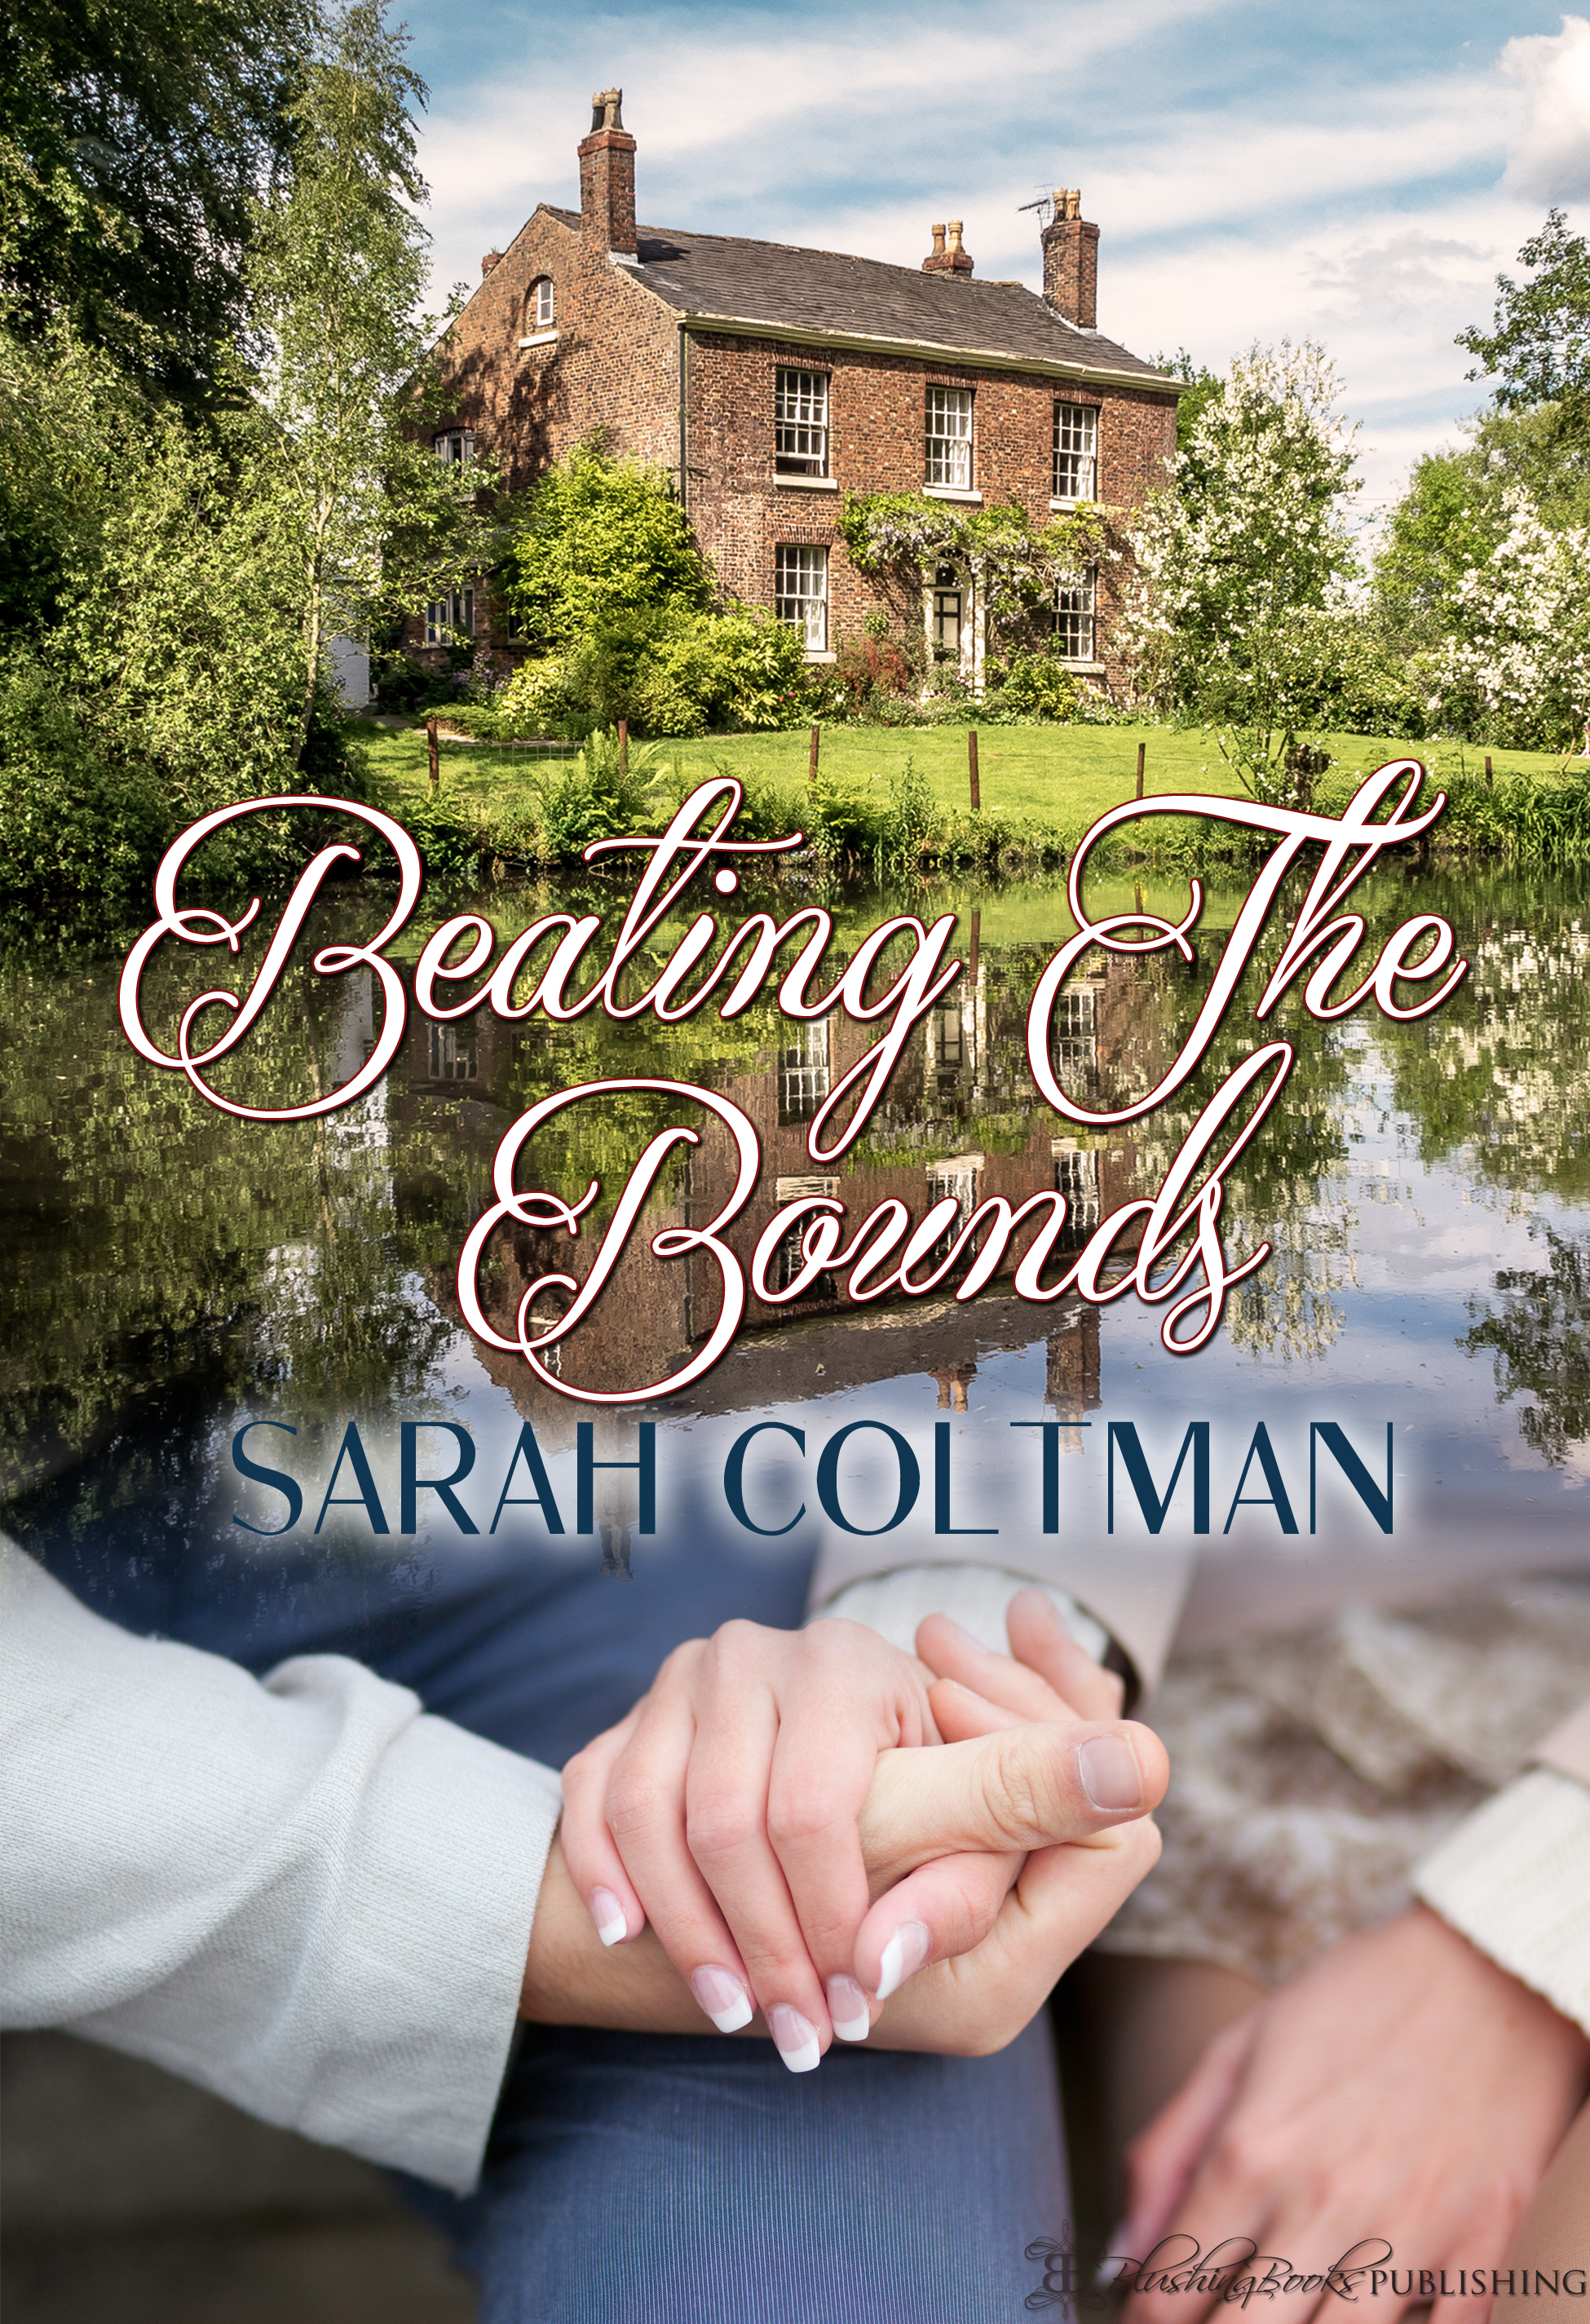 Beating the Bounds  by  Sarah Coltman